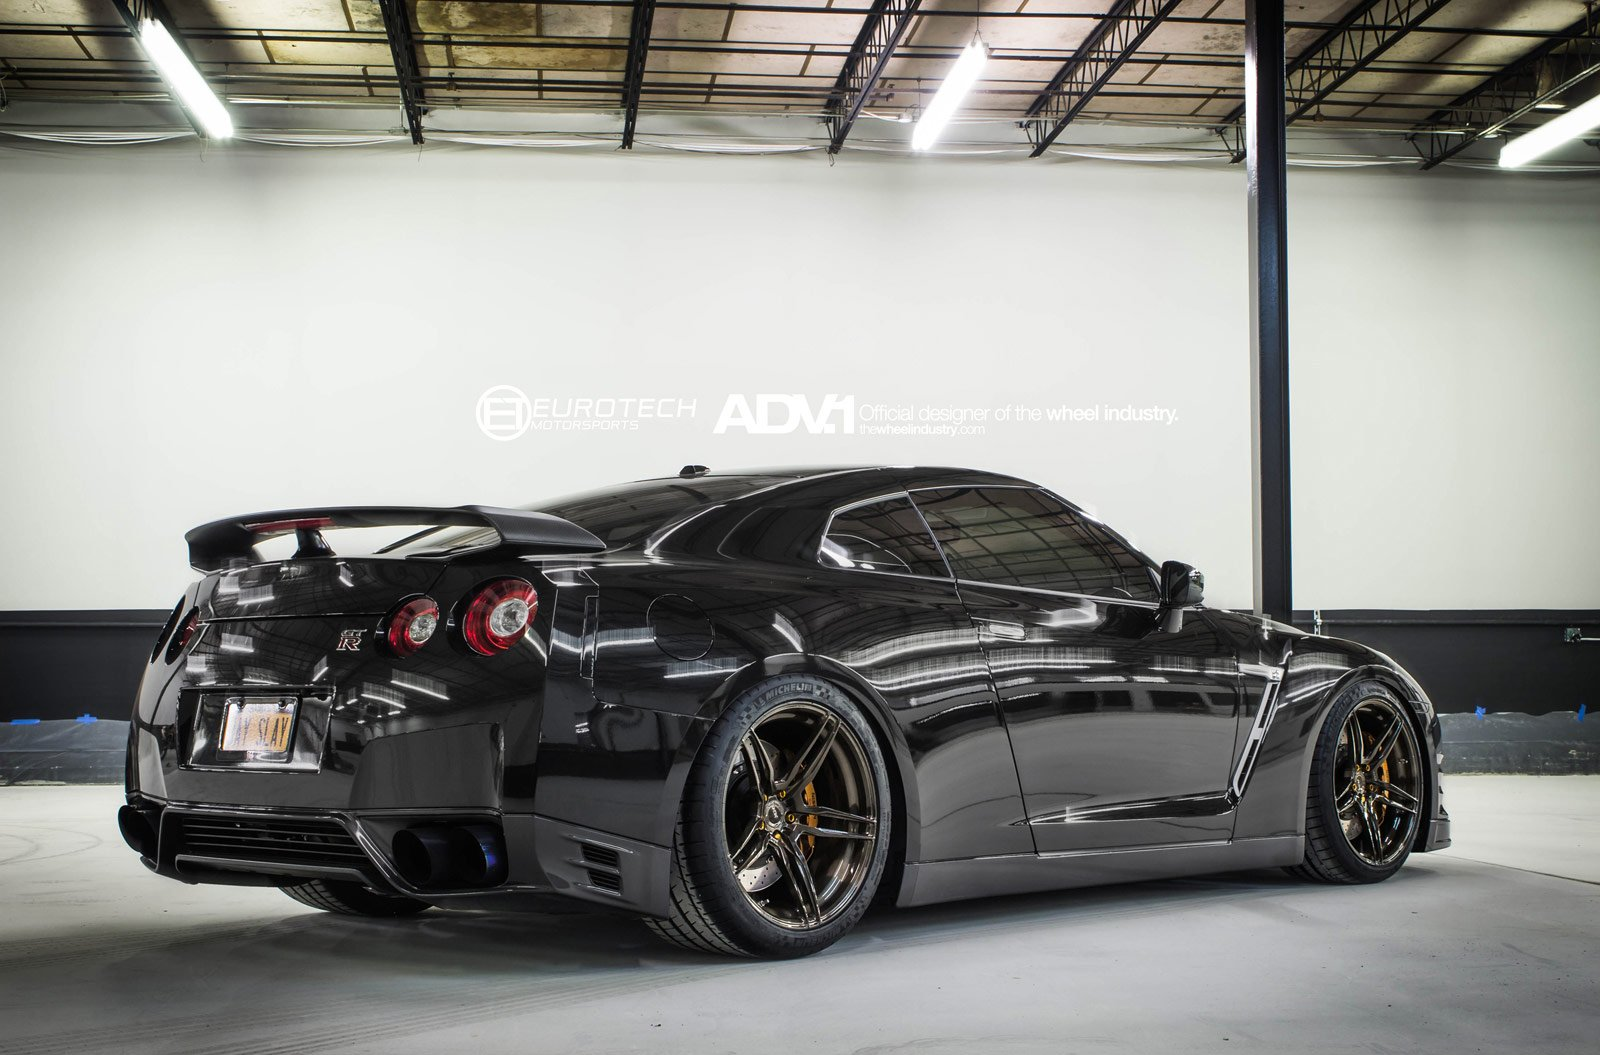 adv1 wheels nissan gtr black tuning wallpaper 1600x1055 426590 wallpaperup. Black Bedroom Furniture Sets. Home Design Ideas